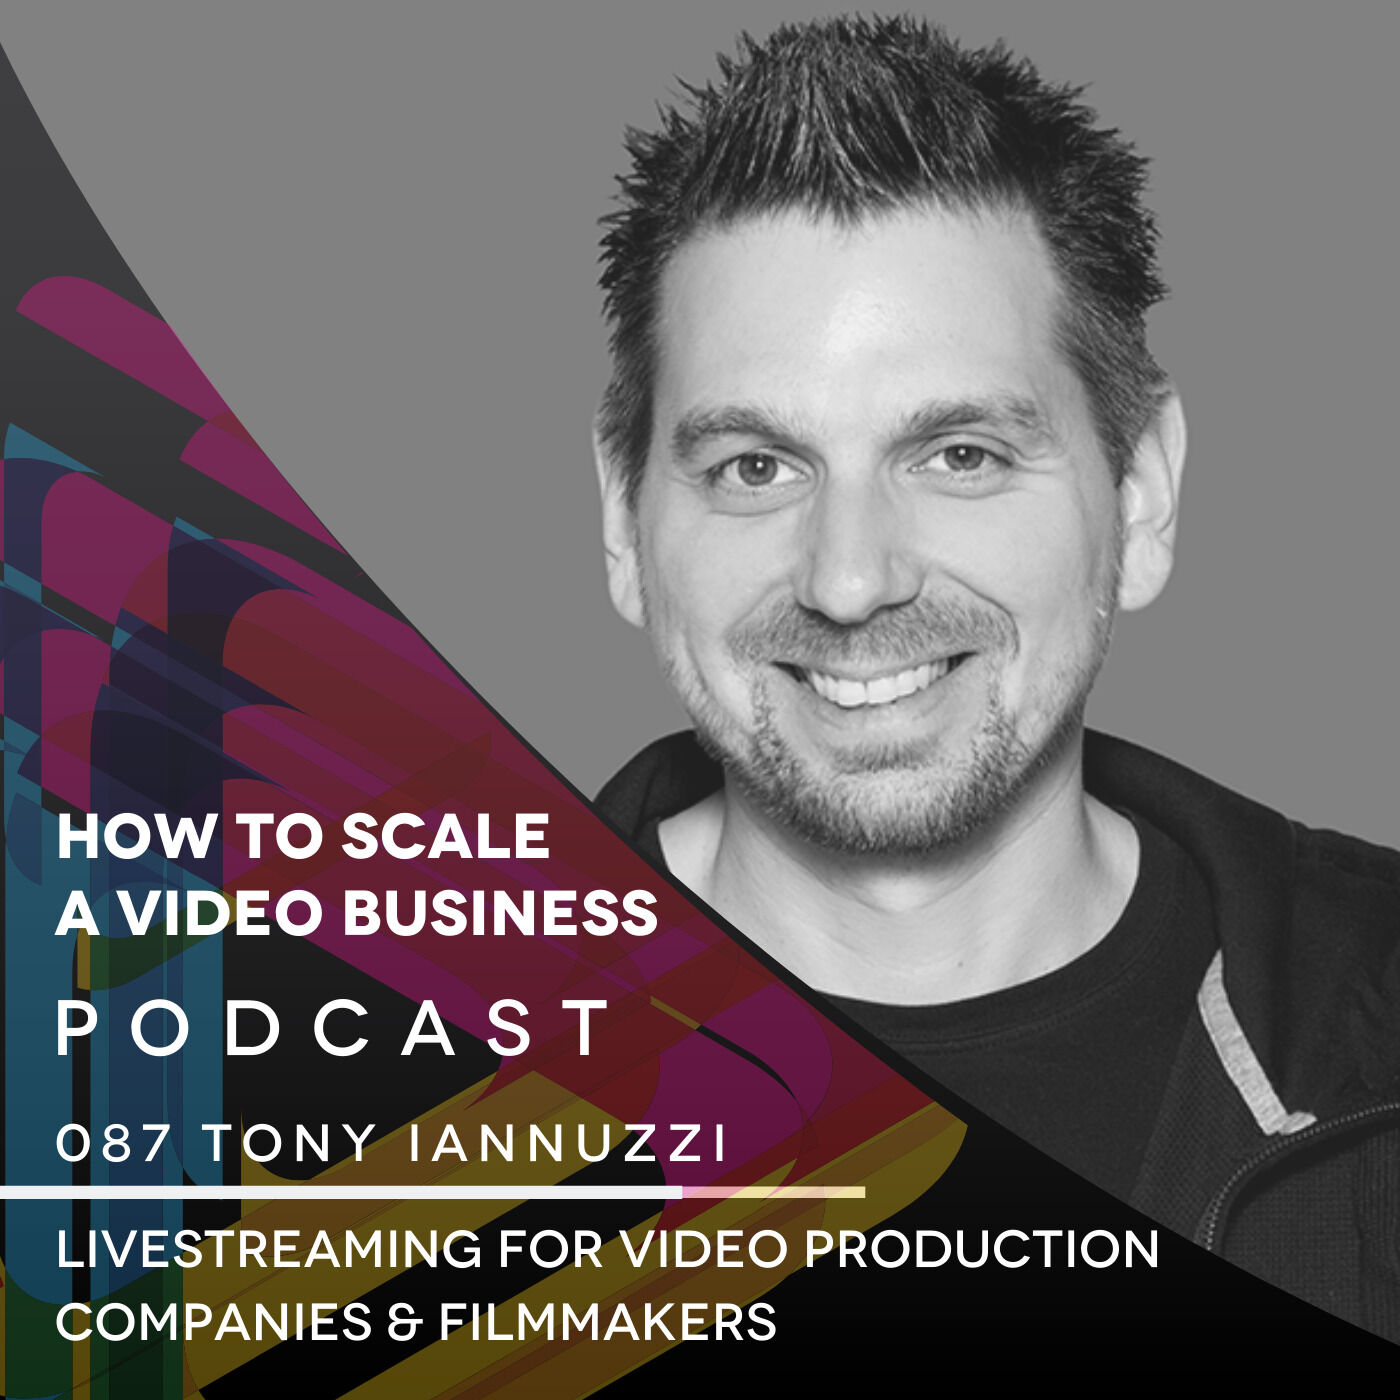 Live-Streaming for Video Production Companies & Filmmakers with Tony Iannuzzi EP#087